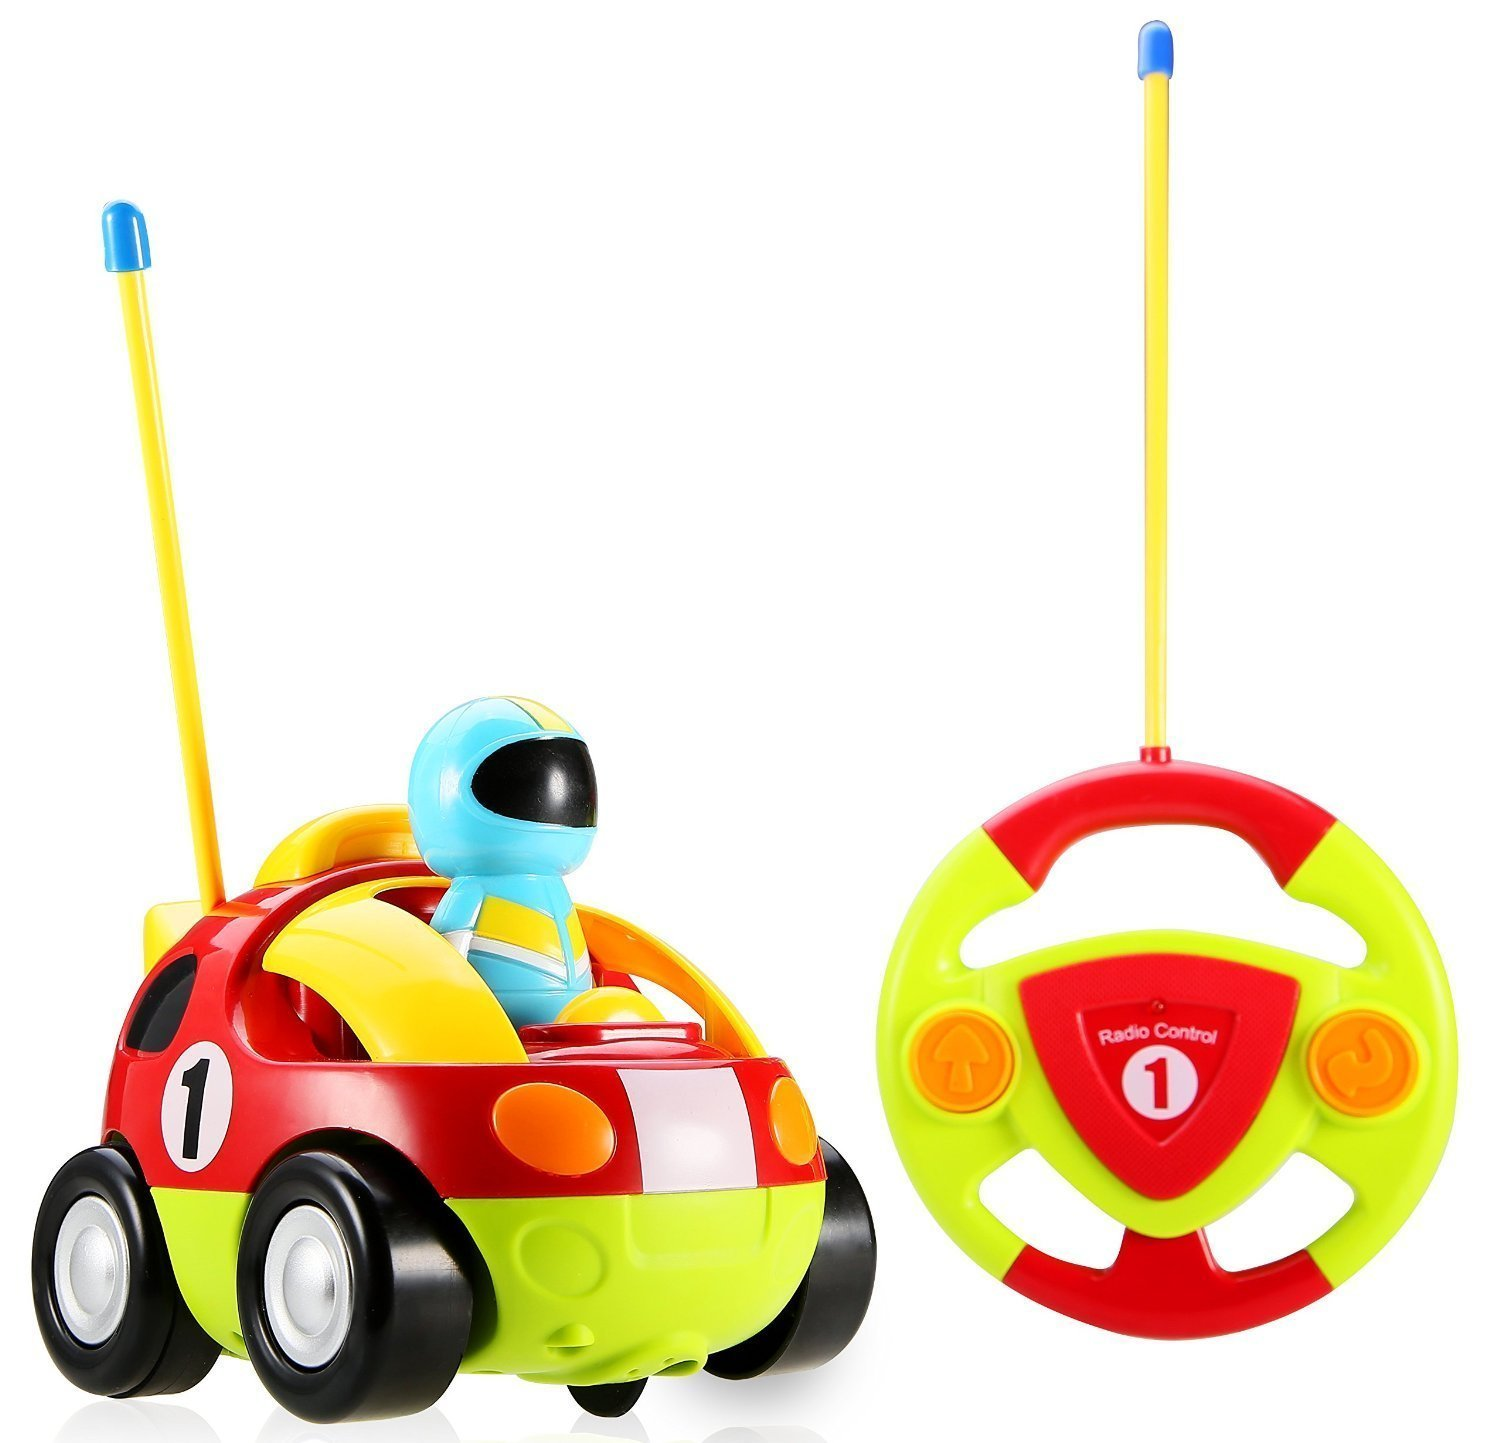 1500x1443 Cartoon Rc Race Car Radio Control Toy For Toddlers By